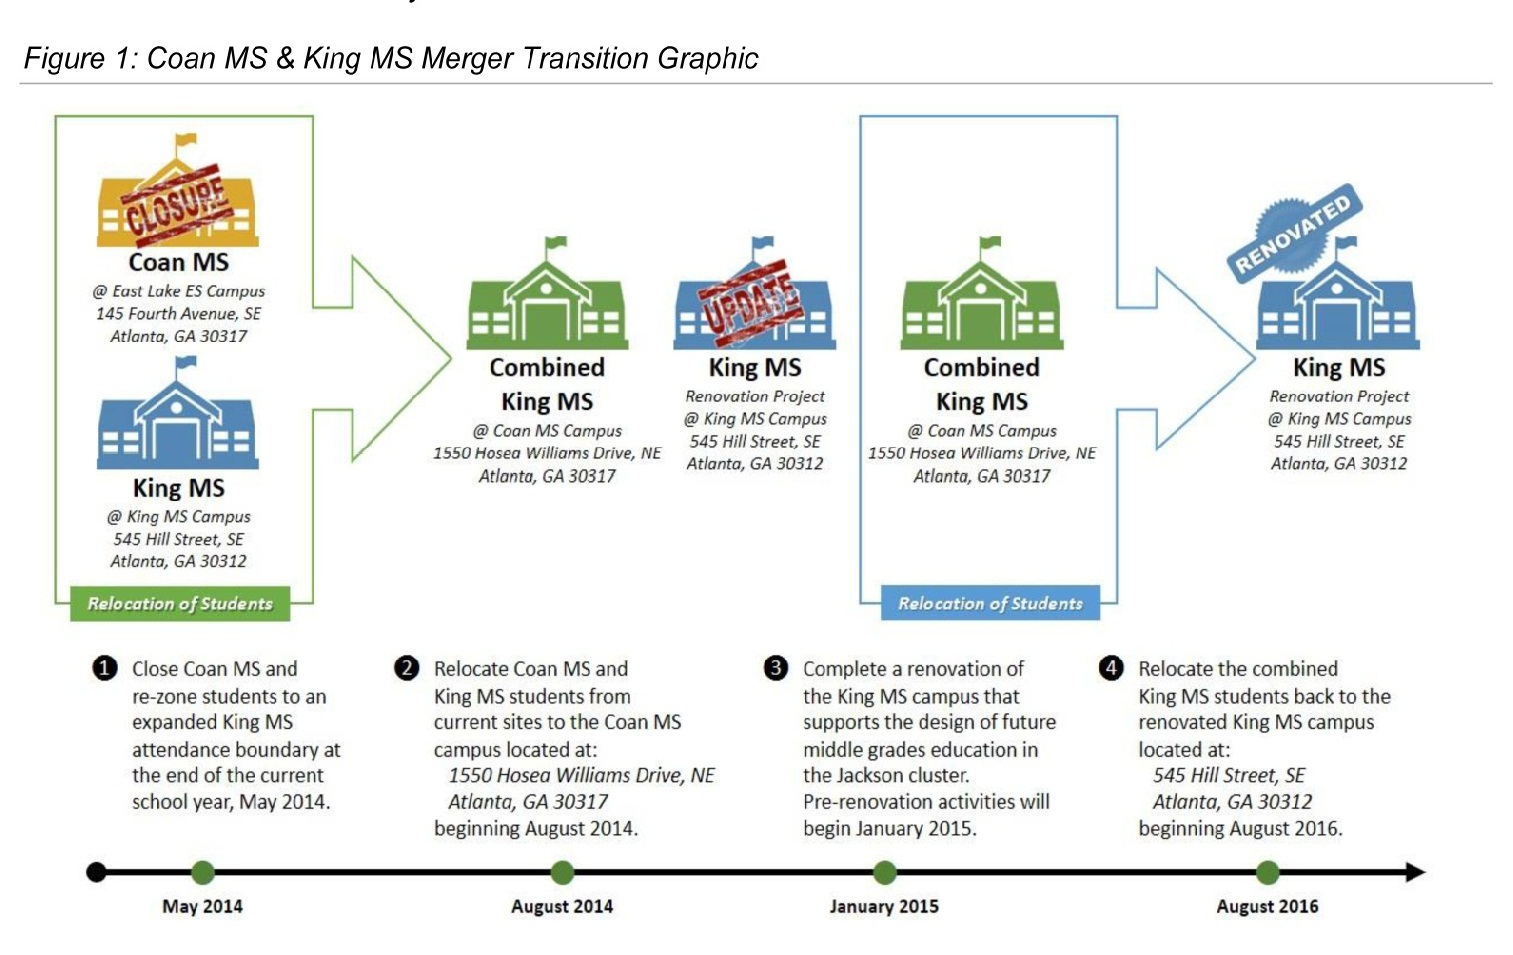 Figure 1: Coan MS & King MS Merger Transition Graphic